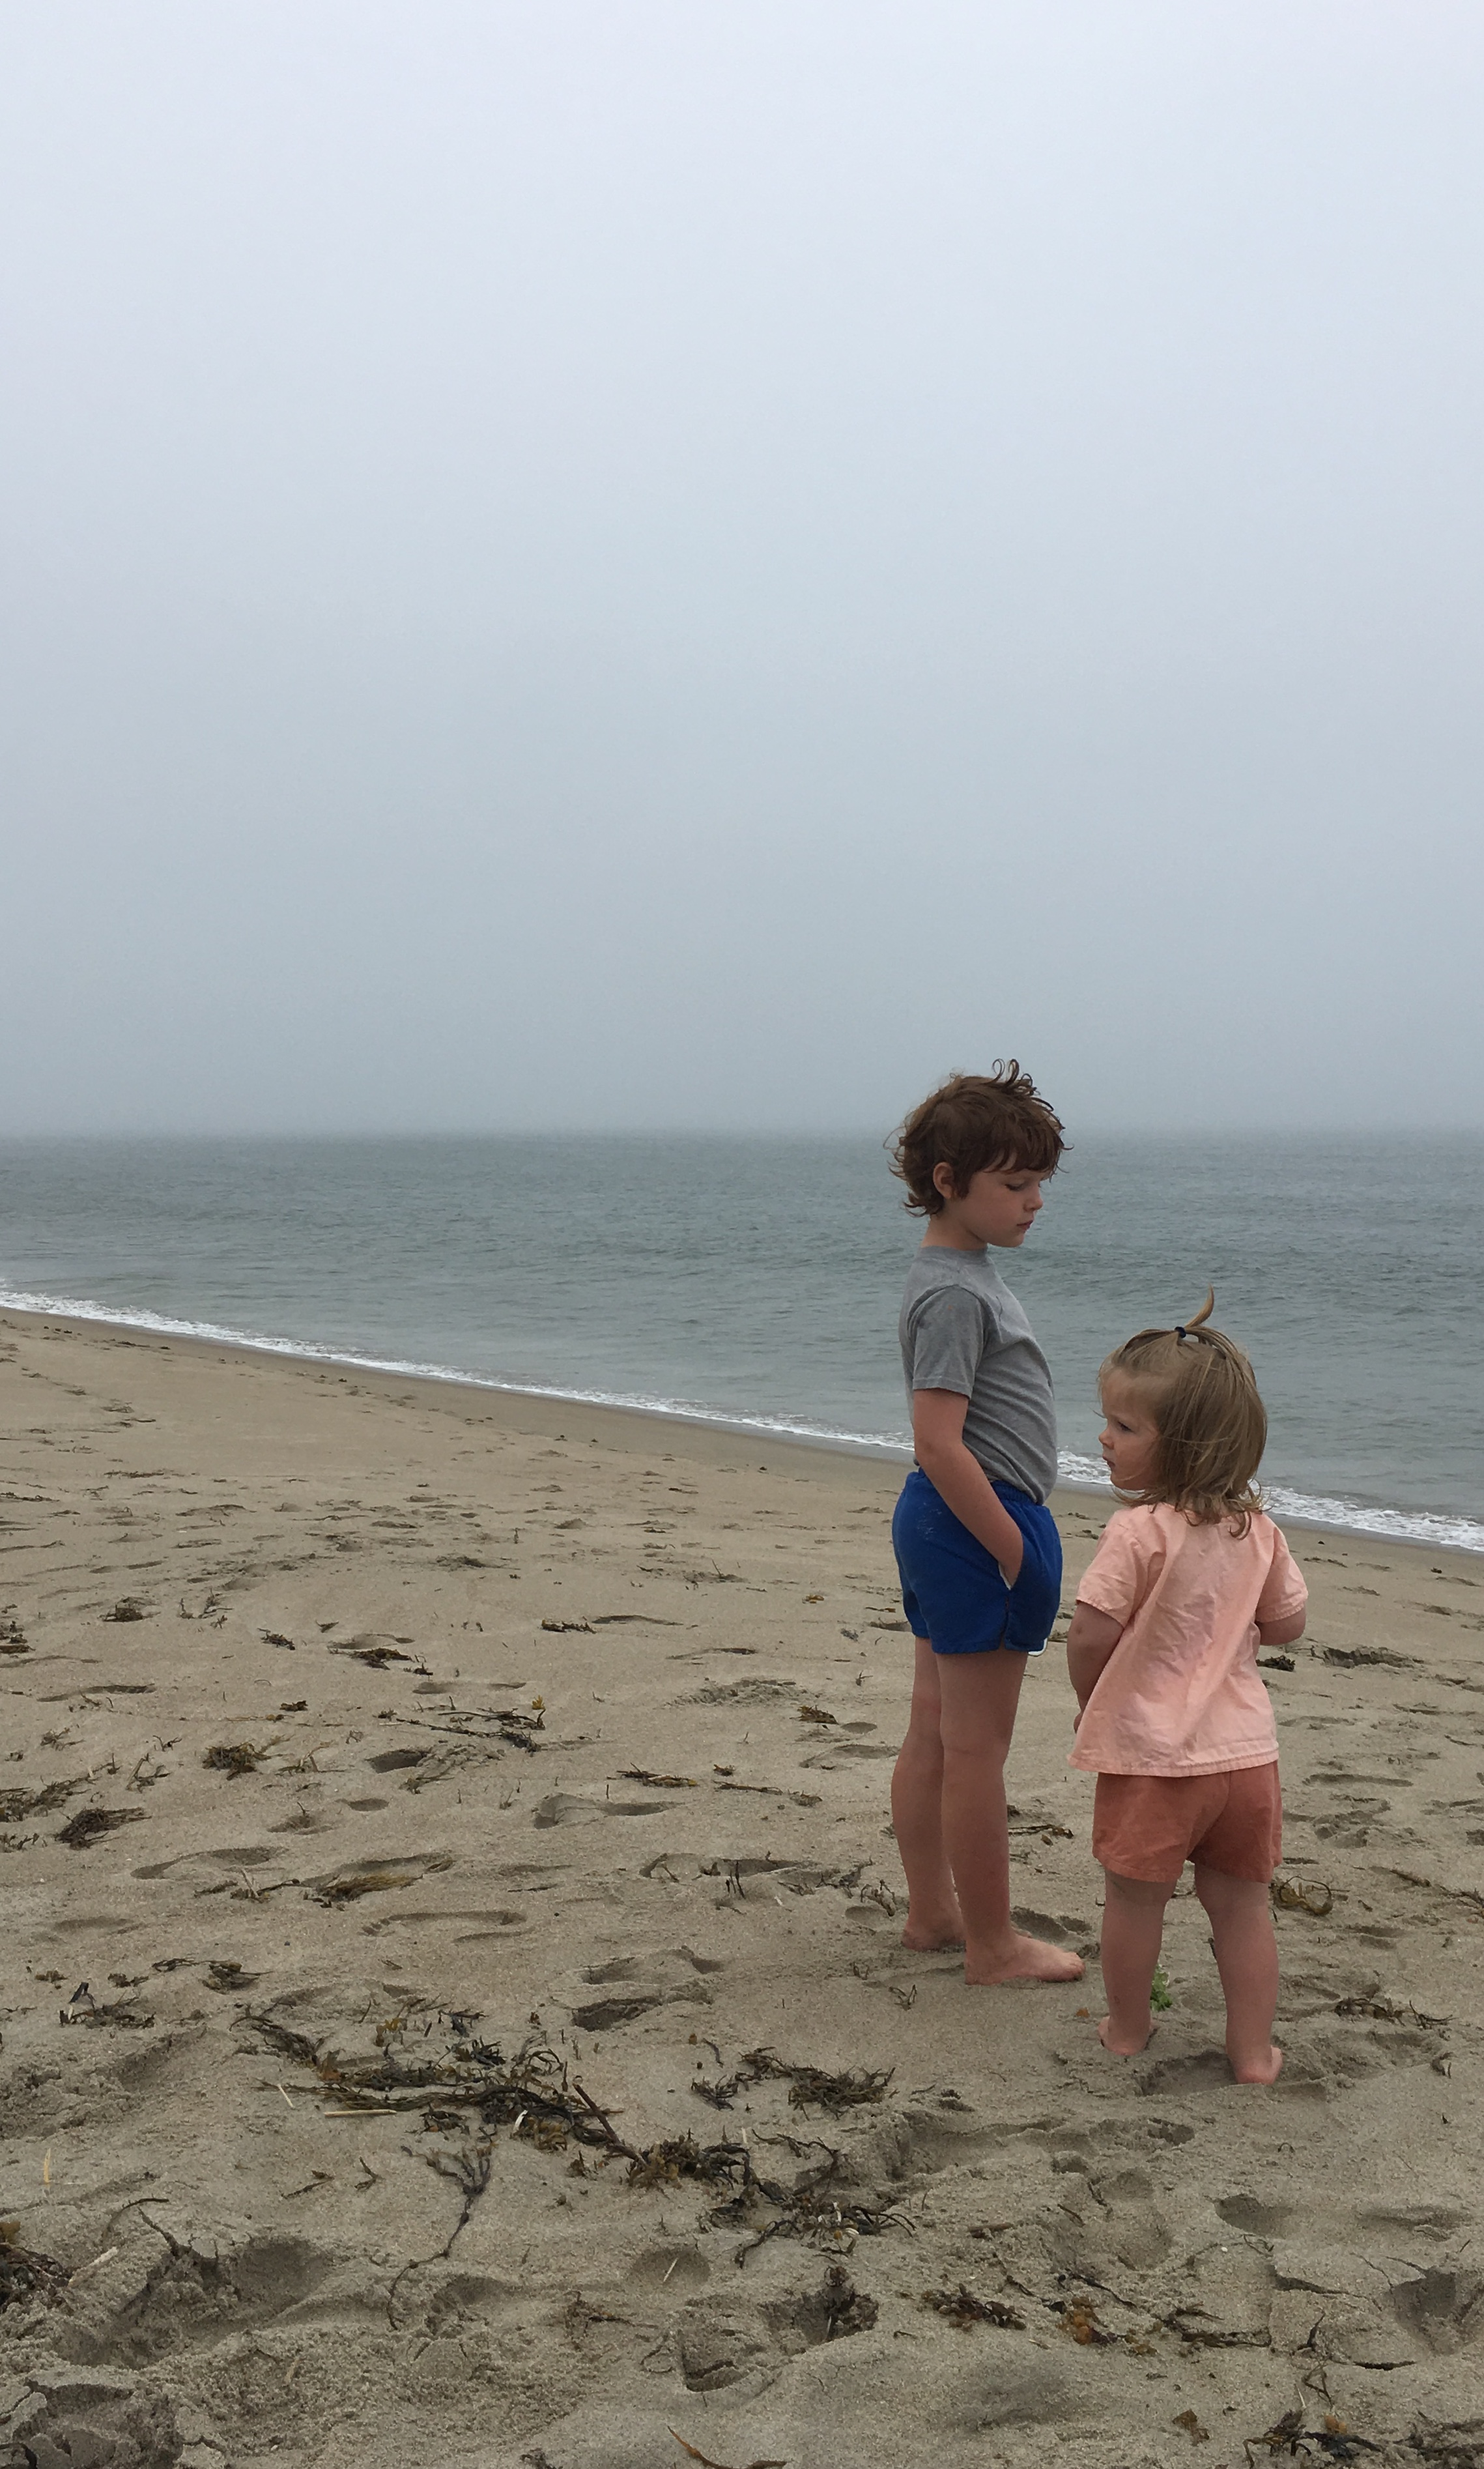 My boys, who soaked up the sand and the waves and had an ice cream cone every single day, just like they'd hoped to.